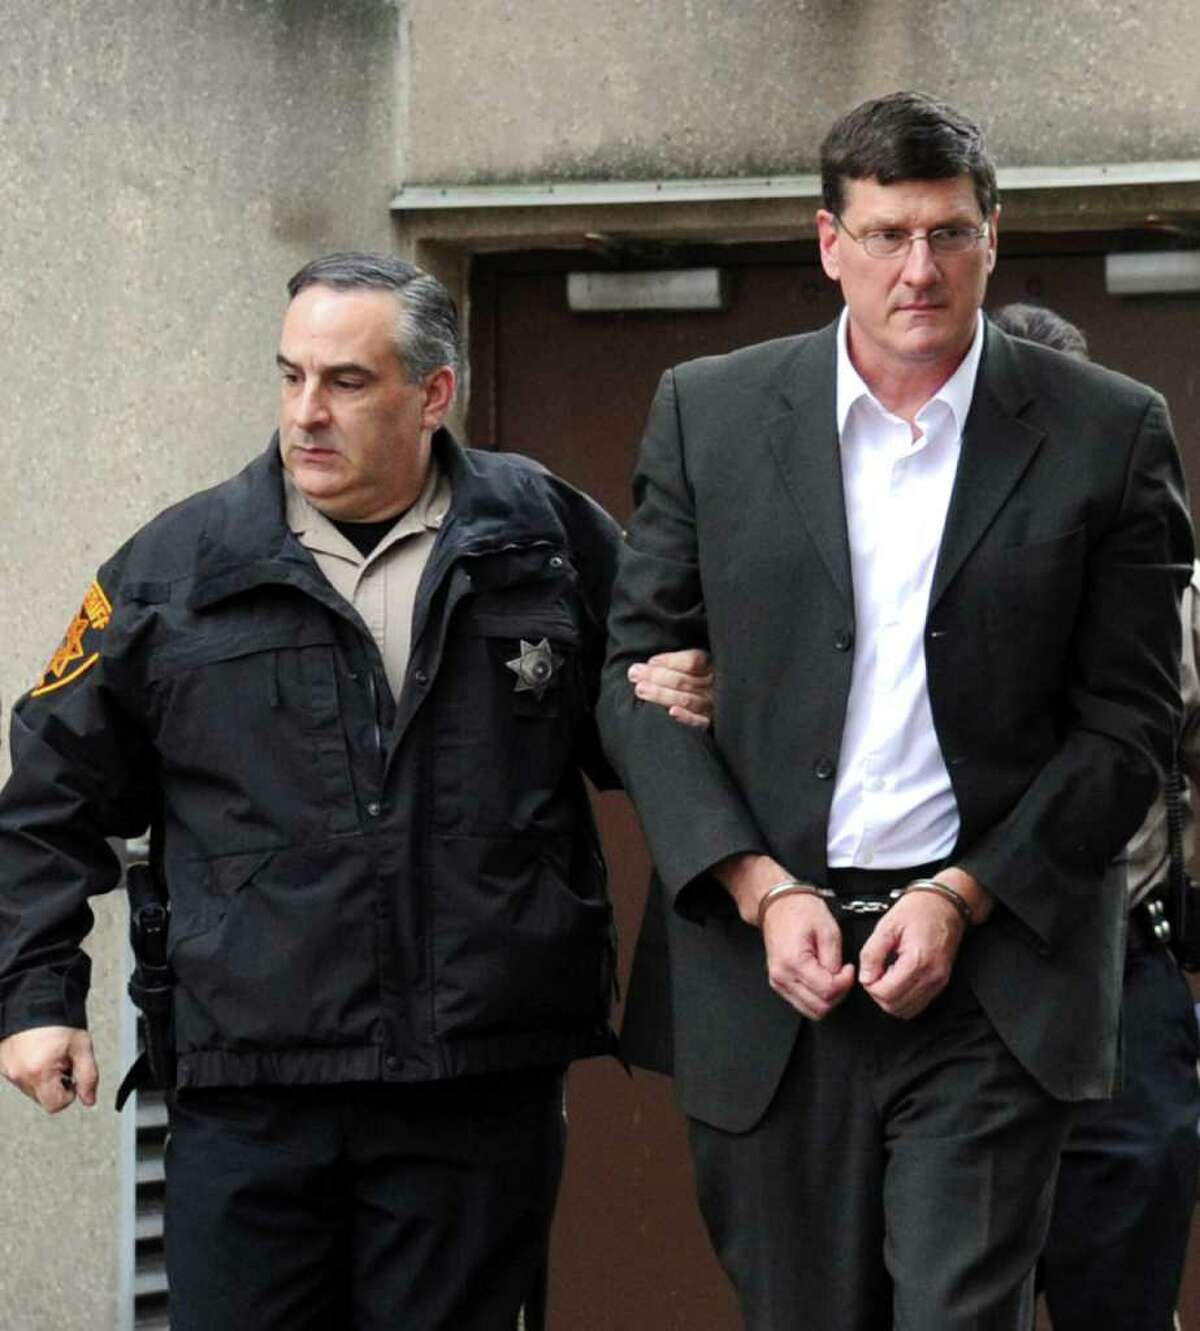 Scott Ritter, former chief United Nations weapons inspector, right, is led from the Monroe County courthouse in Stroudsburg, Pa., on Wednesday, October 26, 2011. Ritter was sentanced to 18-66 months in state prison after being convicted of unlawful contact with a minor and other felonies. Escorting Ritter is Deputy Scott Martin from the Monroe County Sheriff's office. (AP Photo/Pocono Record, David Kidwell) MANDATORY CREDIT